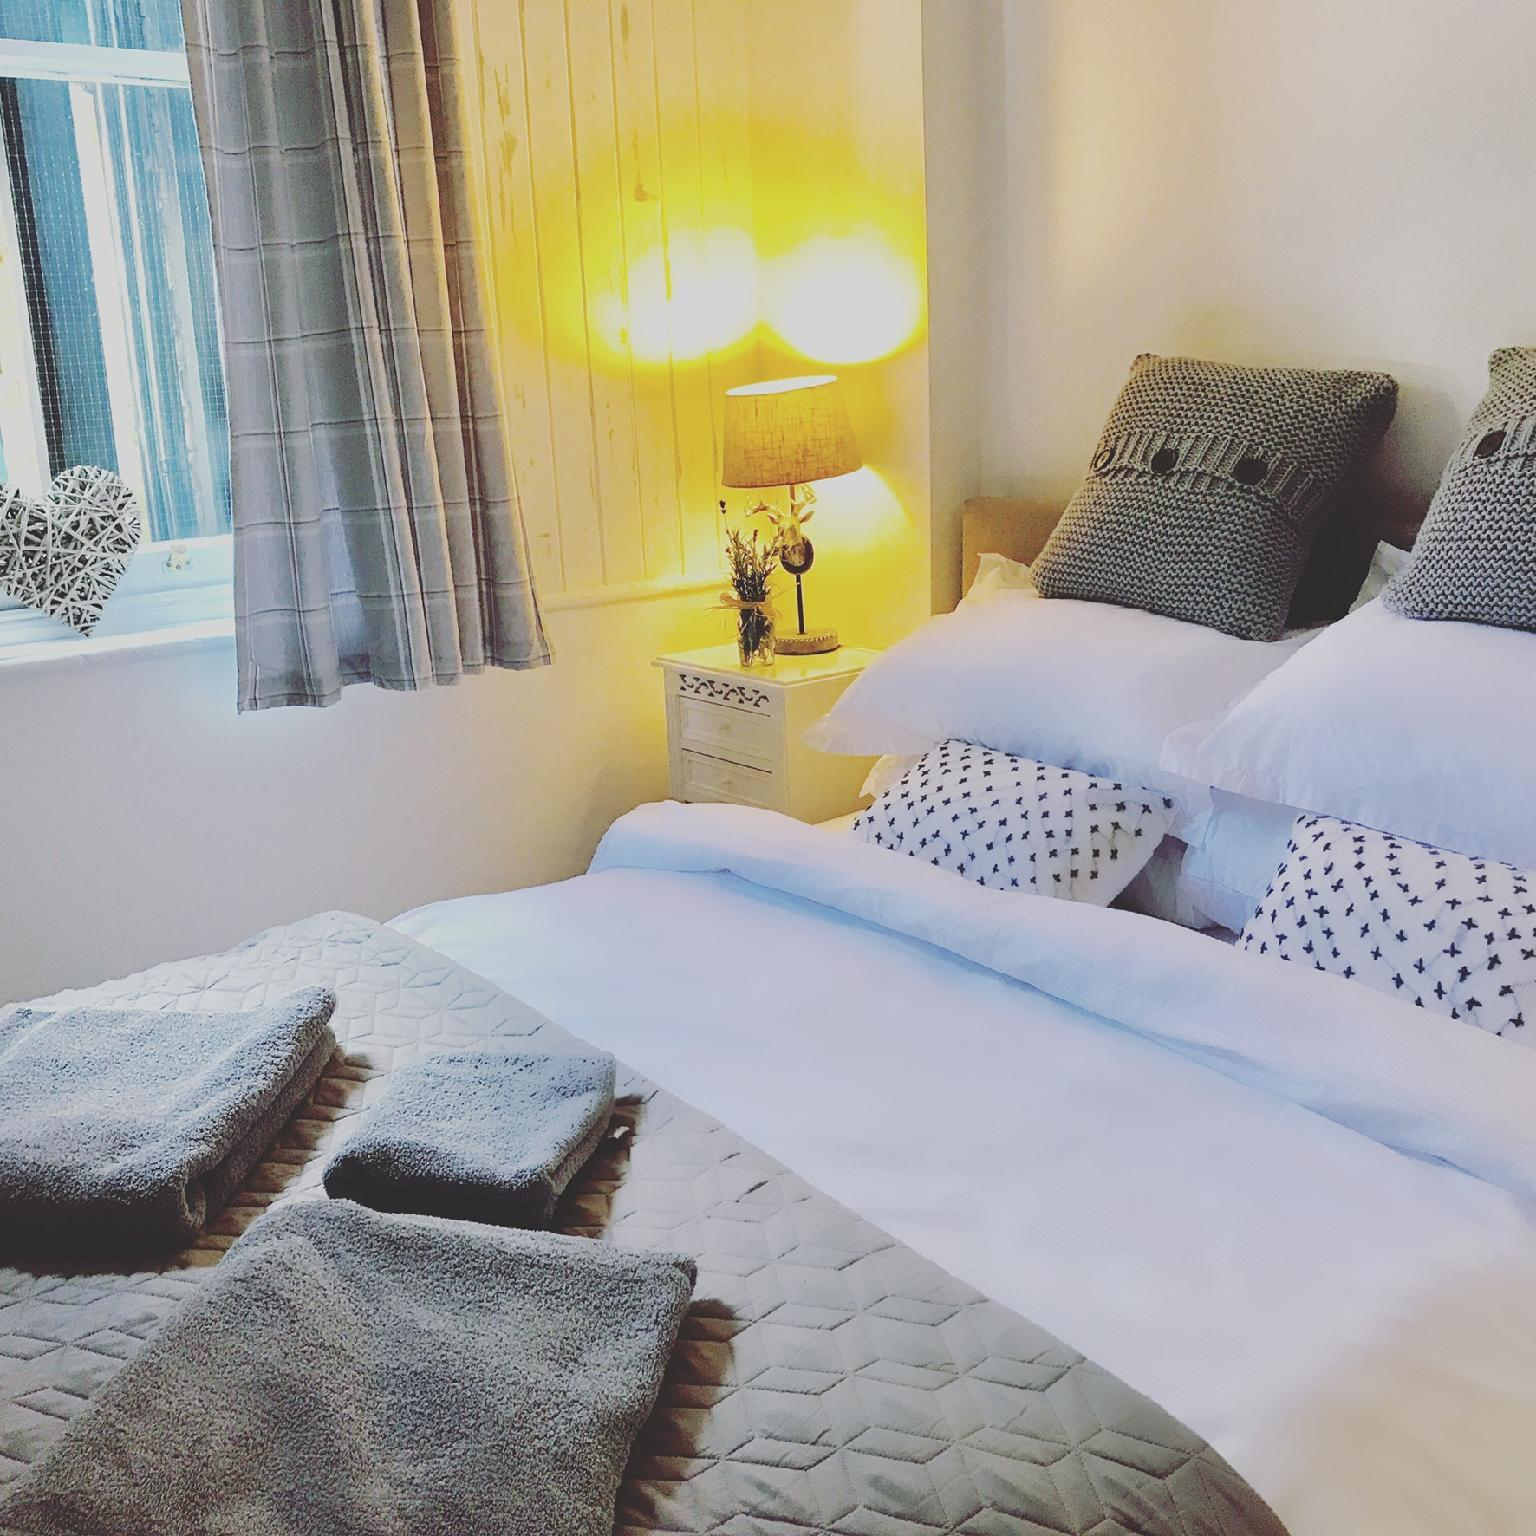 Price 5 star award winning cosy retreat with 2 bedrooms